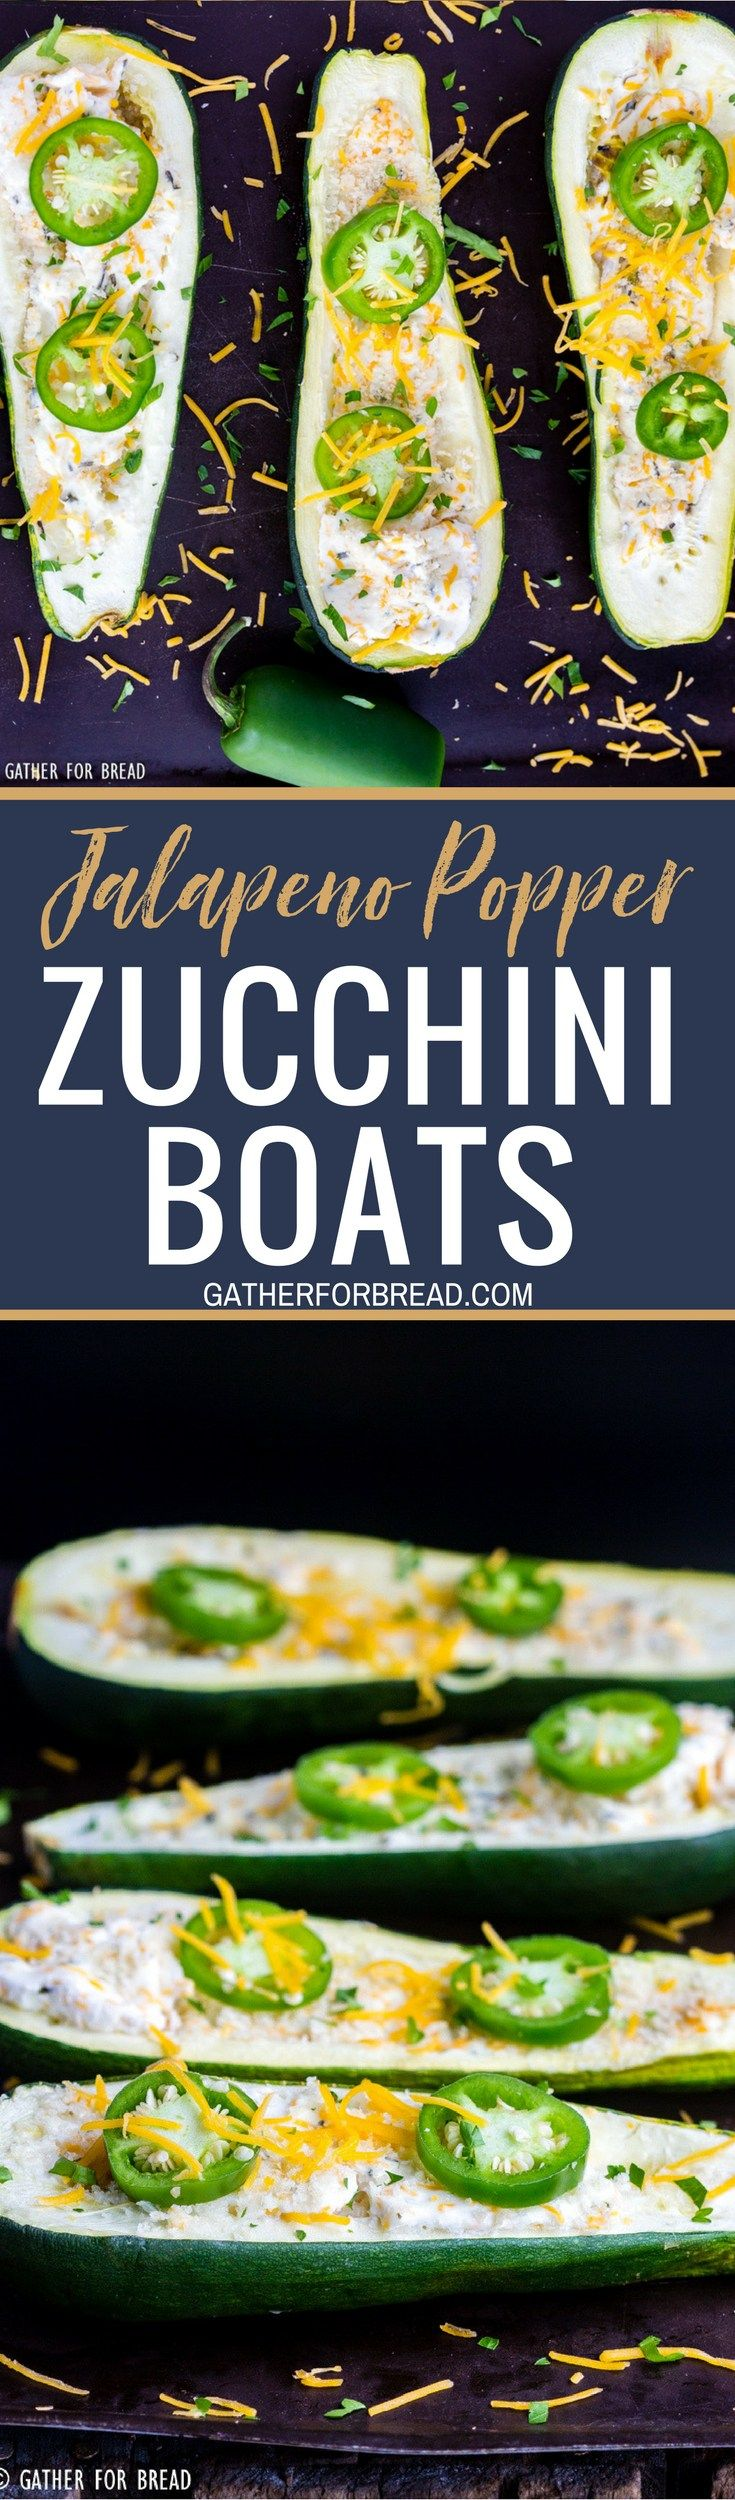 Jalapeno Popper Zucchini Boats - A recipe fresh twist on traditional zucchini boats. They're loaded with cheese, jalapeno and have just the right pop. Perfect homemade summer side dish.